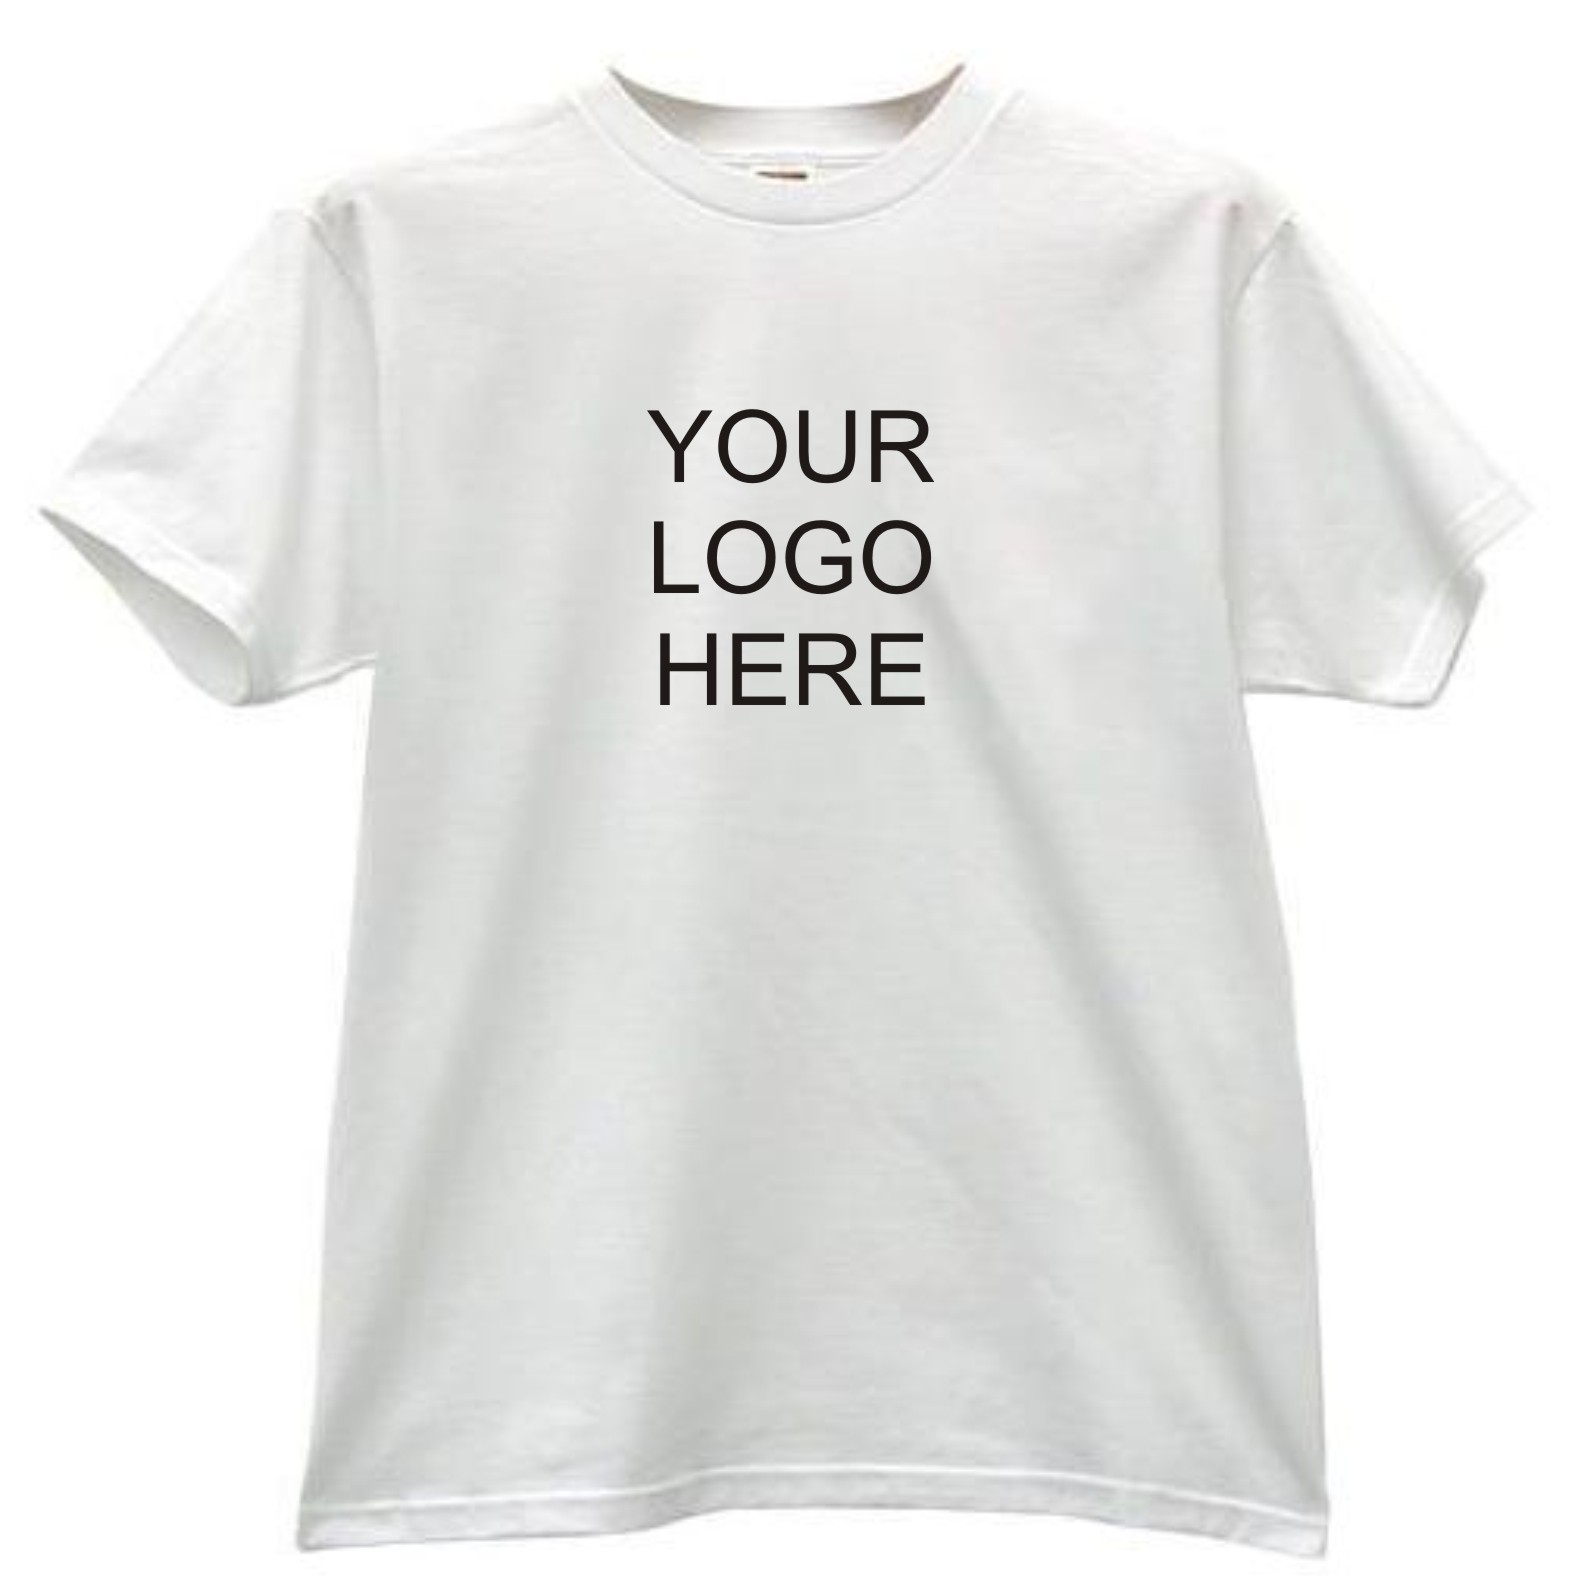 7 ways to use custom t shirts to advertise your company for Custom t shirts design your own